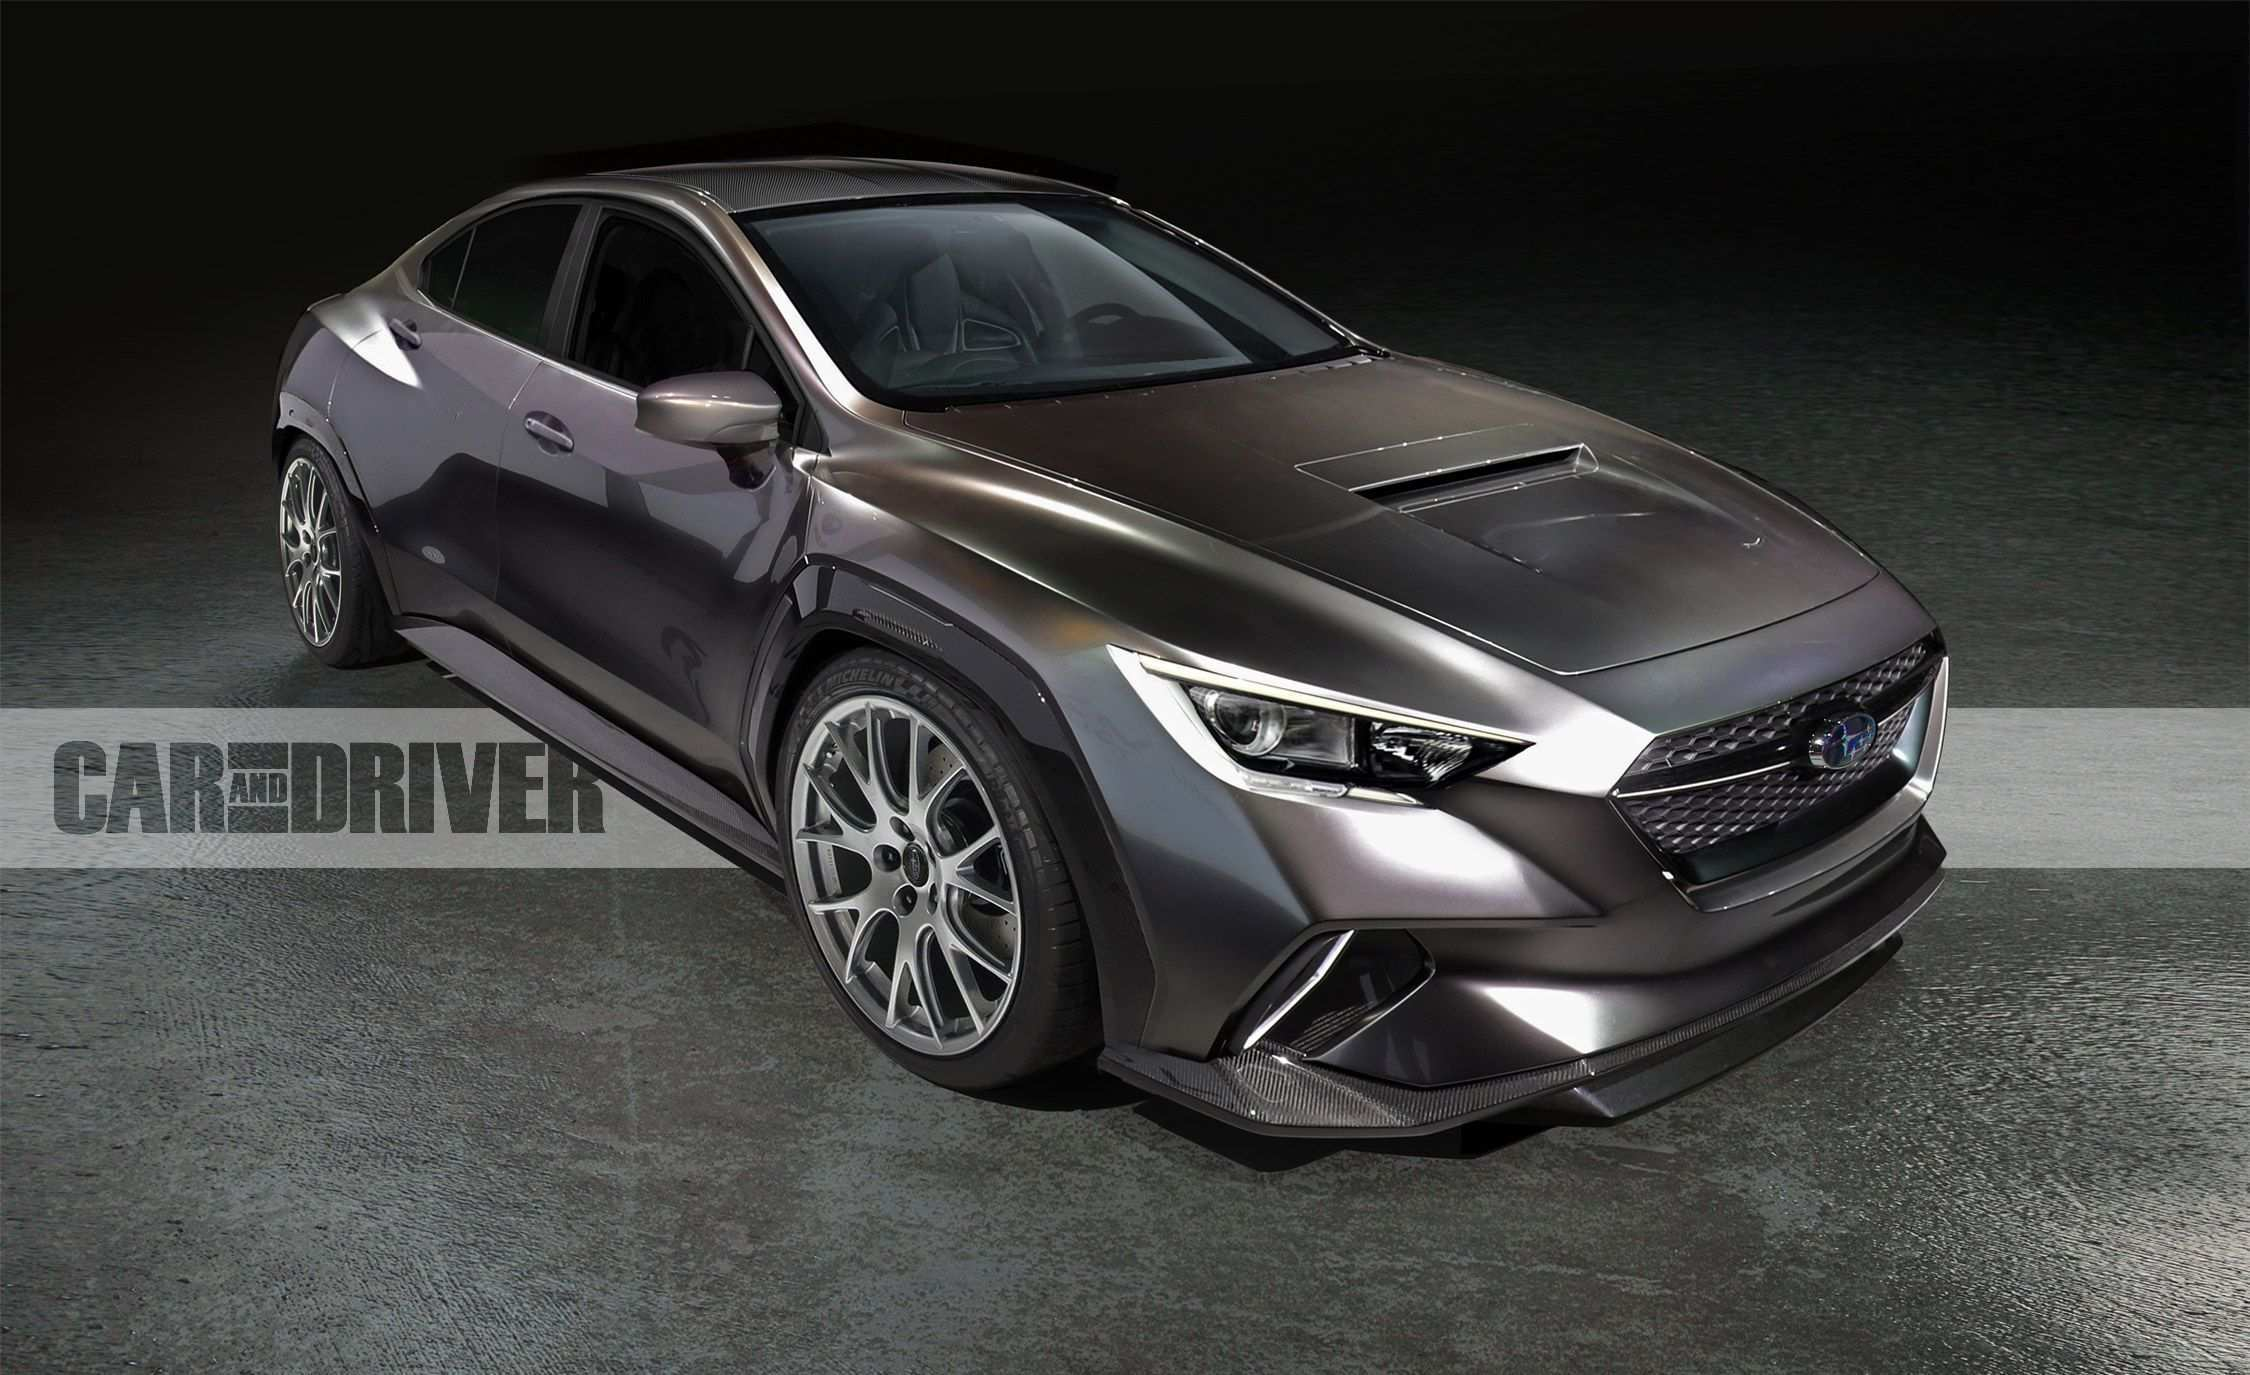 72 A 2020 Subaru Wrx Sti Review Release Date And Concept